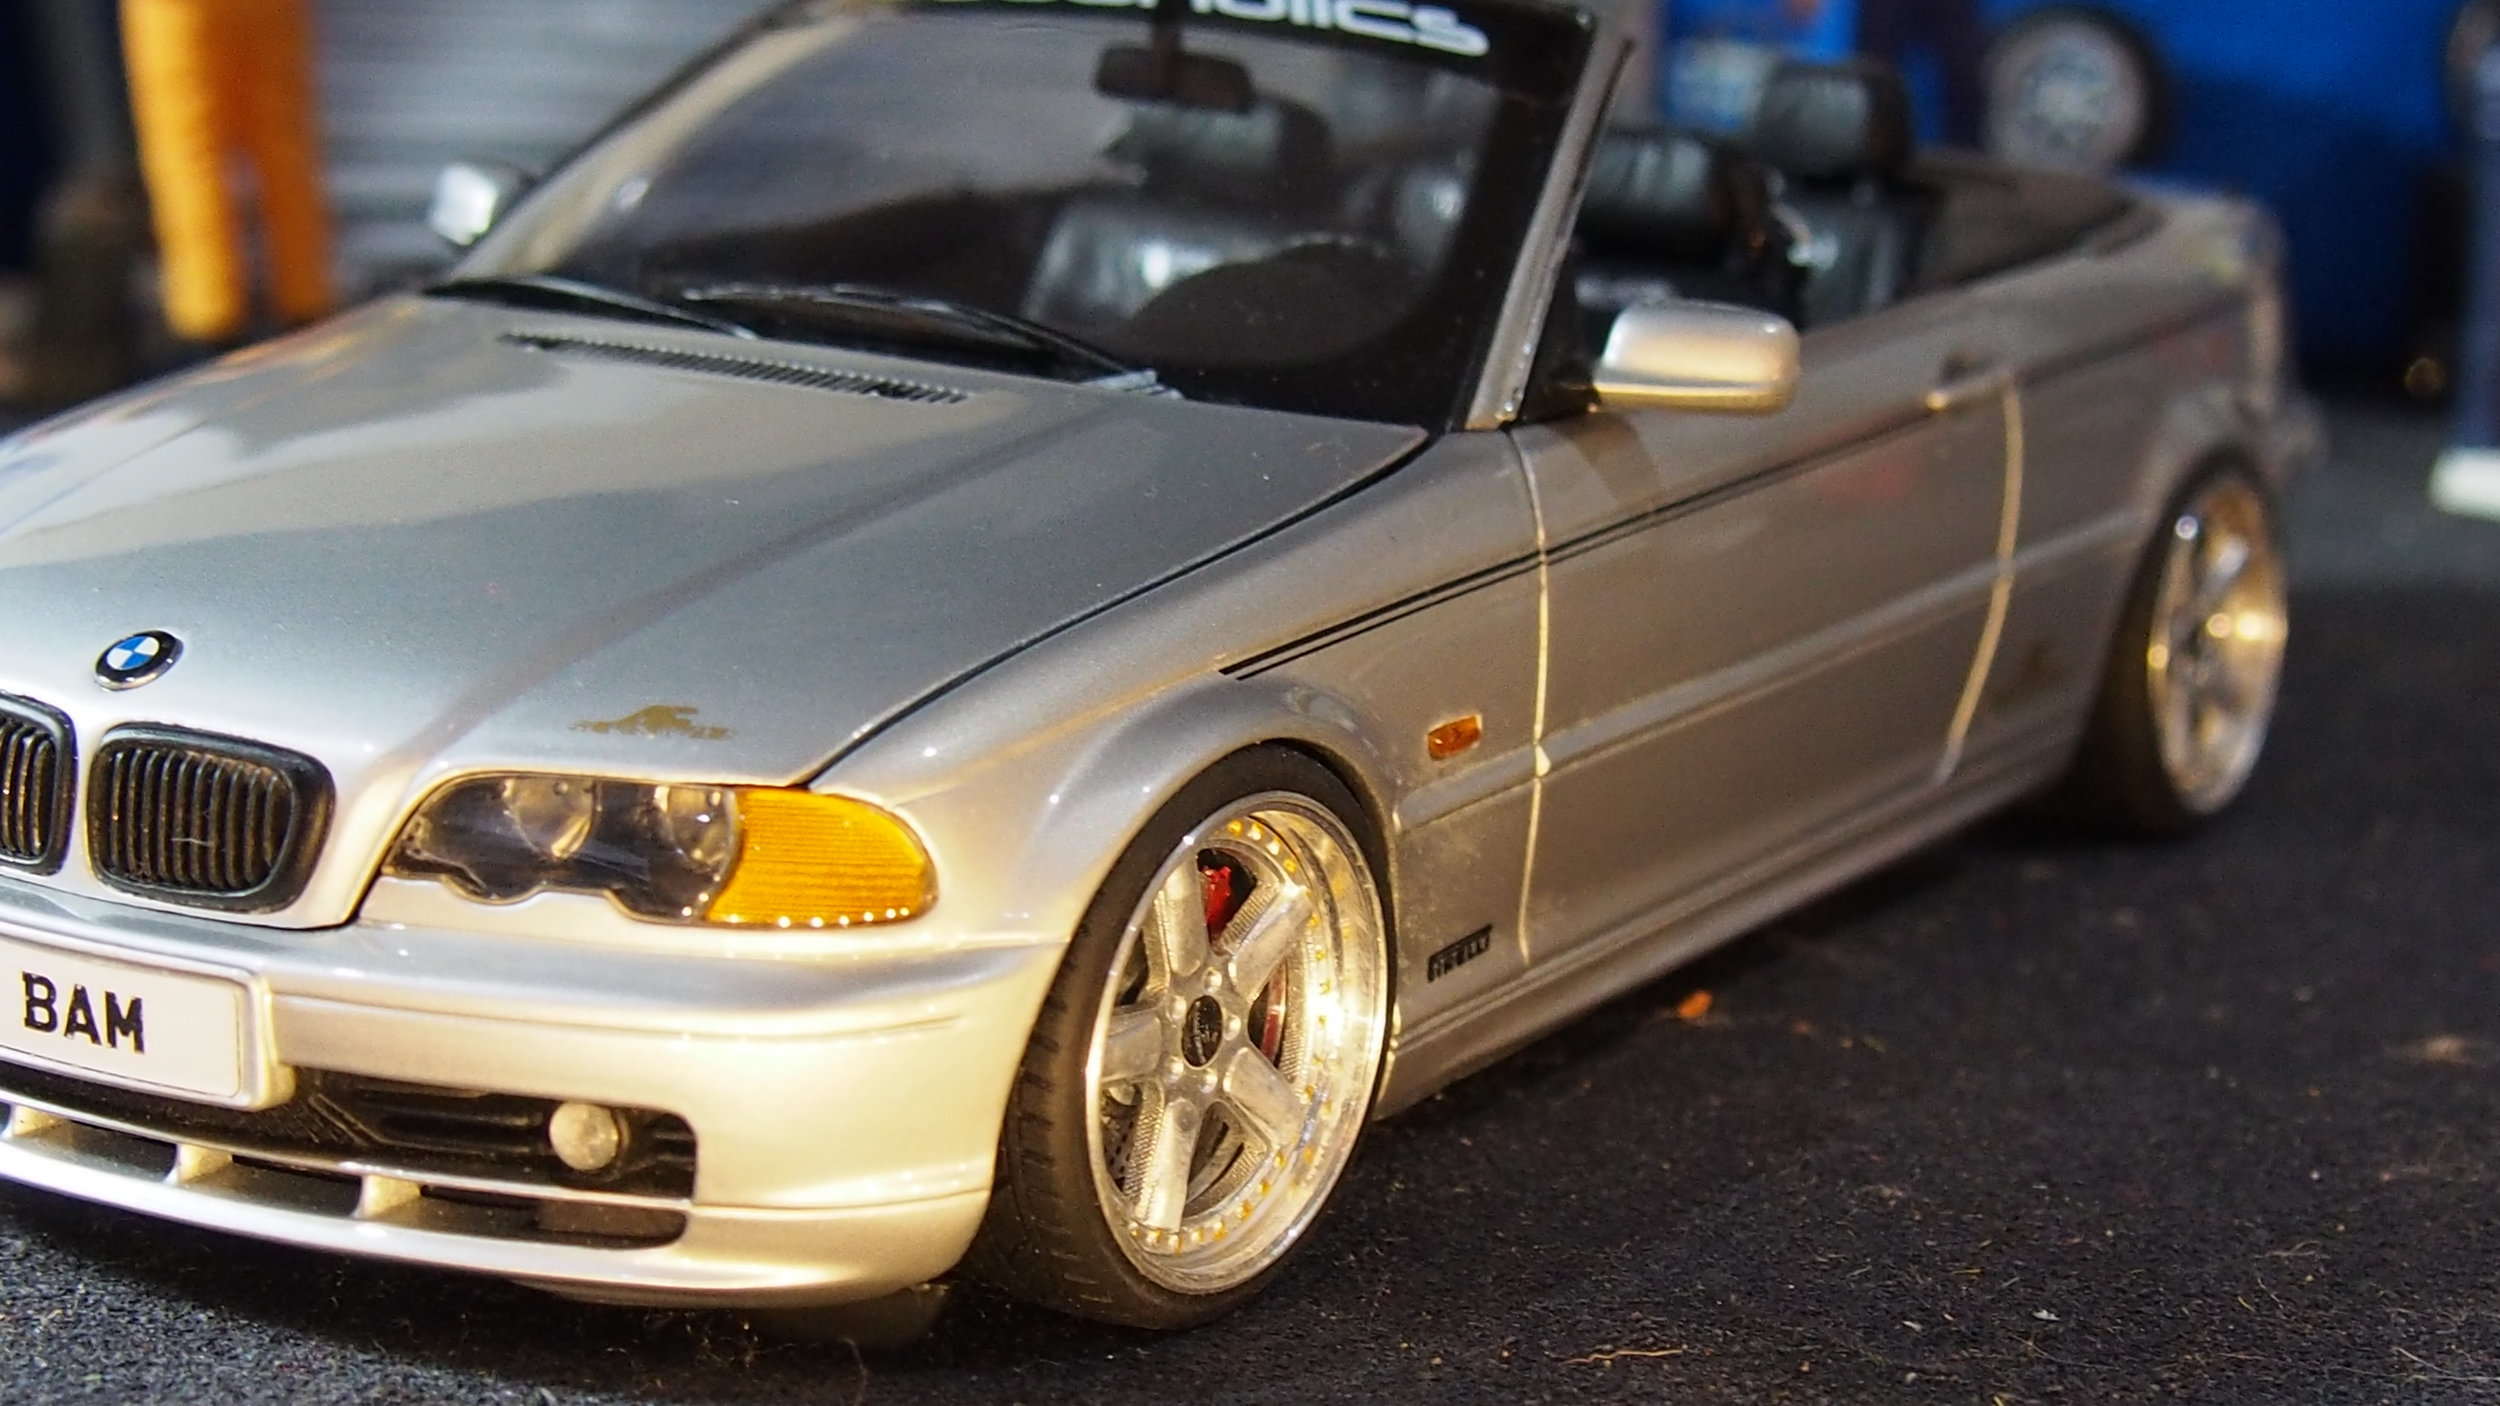 Bmw E46 328ci Cabriolet Ac Schintzer Code 3 By Kyosho Boxed1 18 Total One Off Modified Tuning Umbau Cs Diecast Tuning